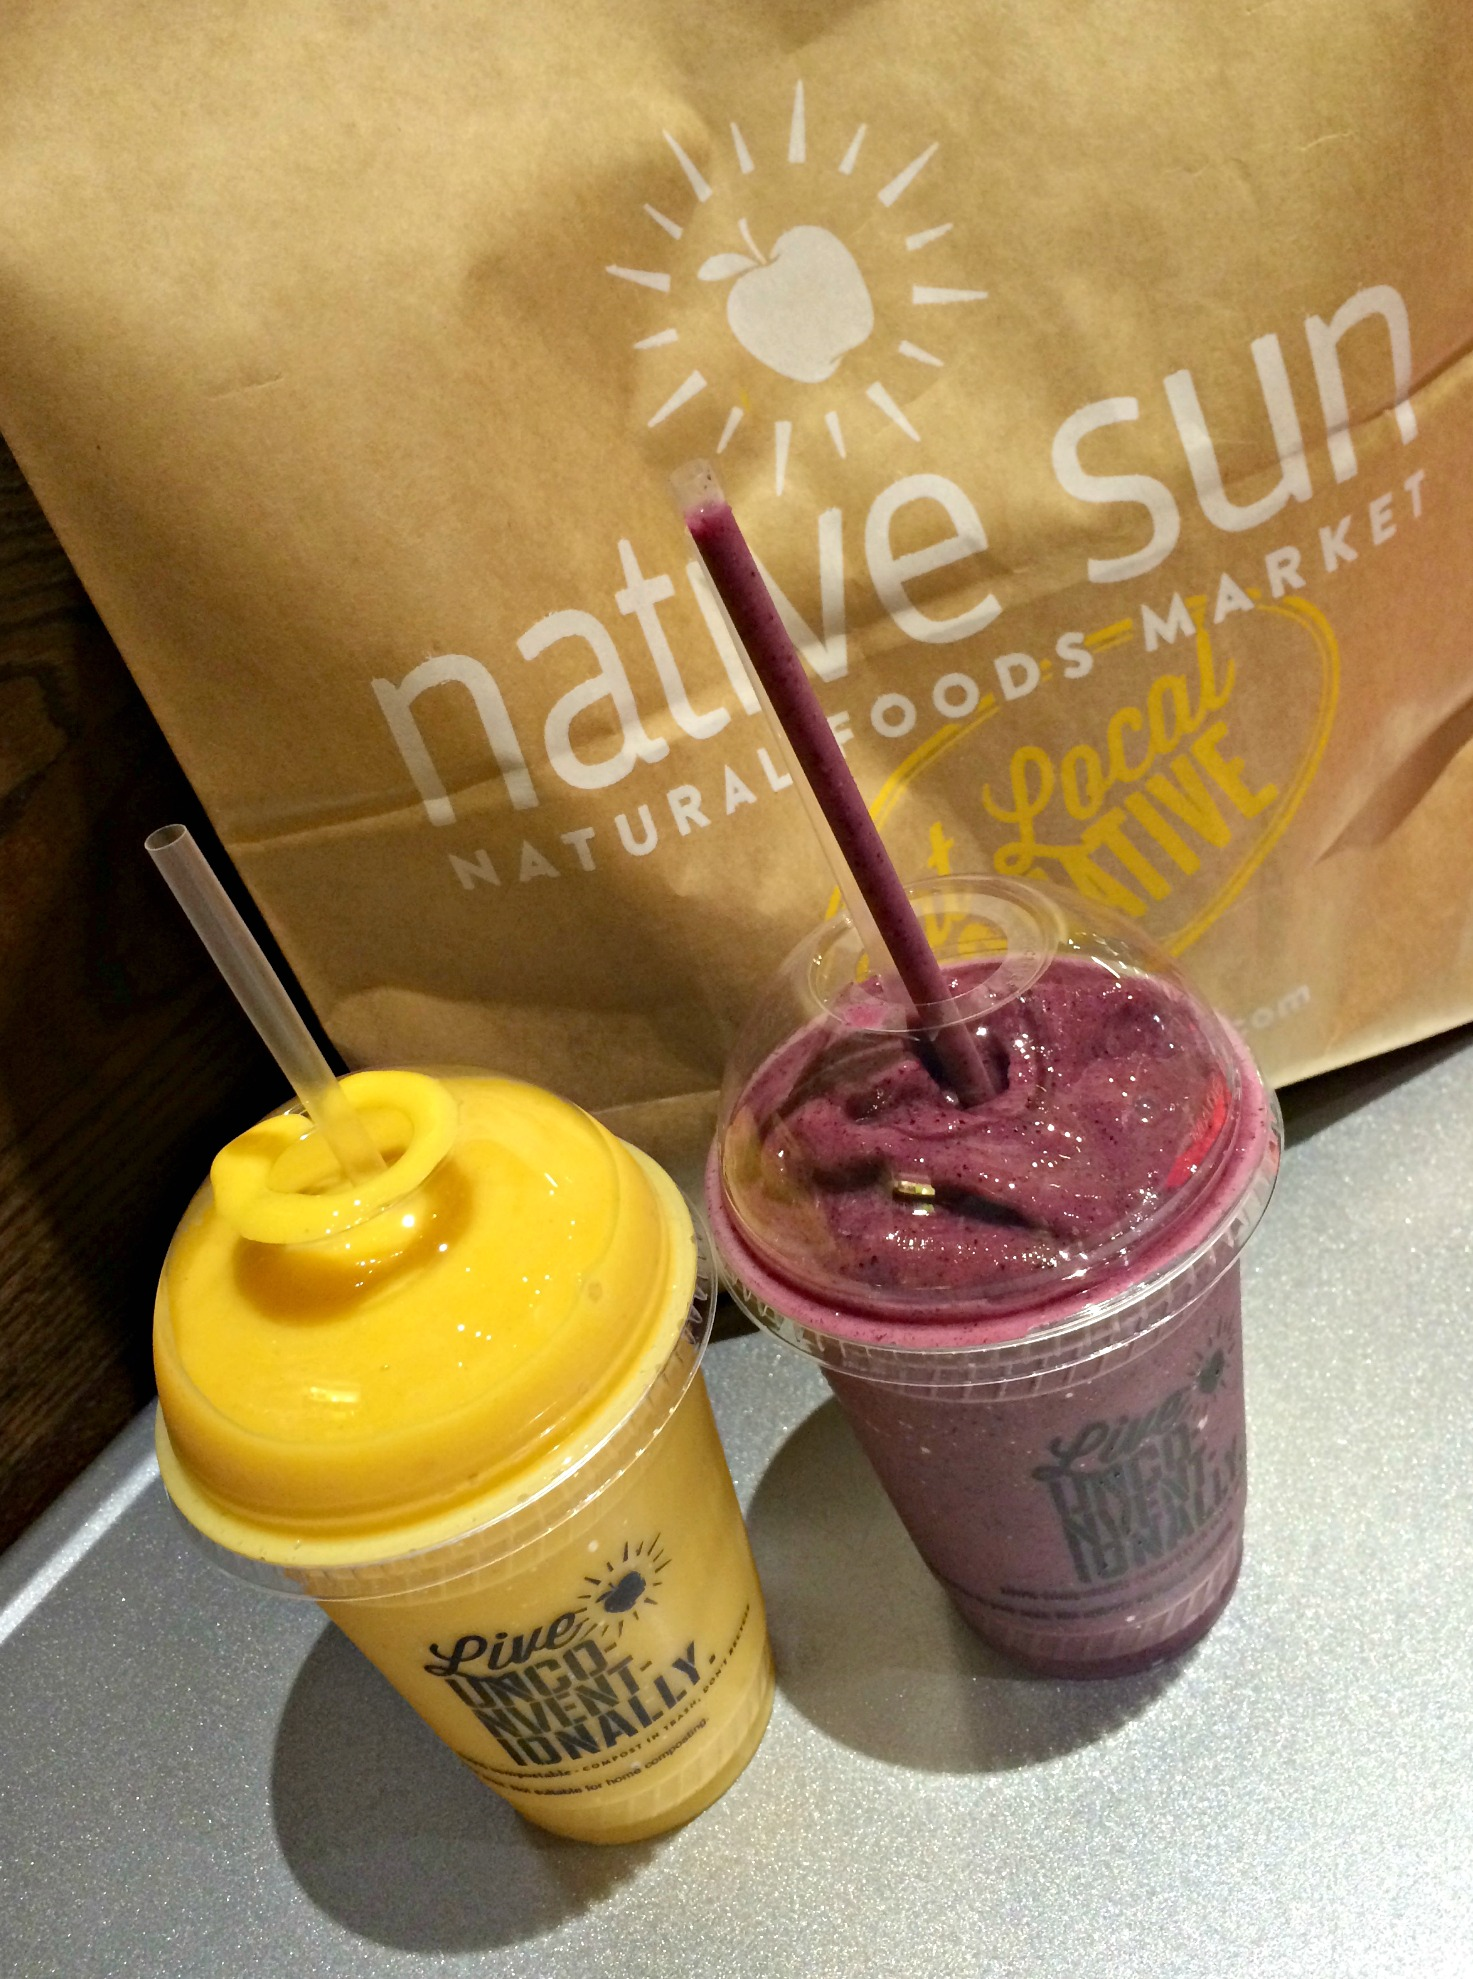 native sun natural foods market smoothies